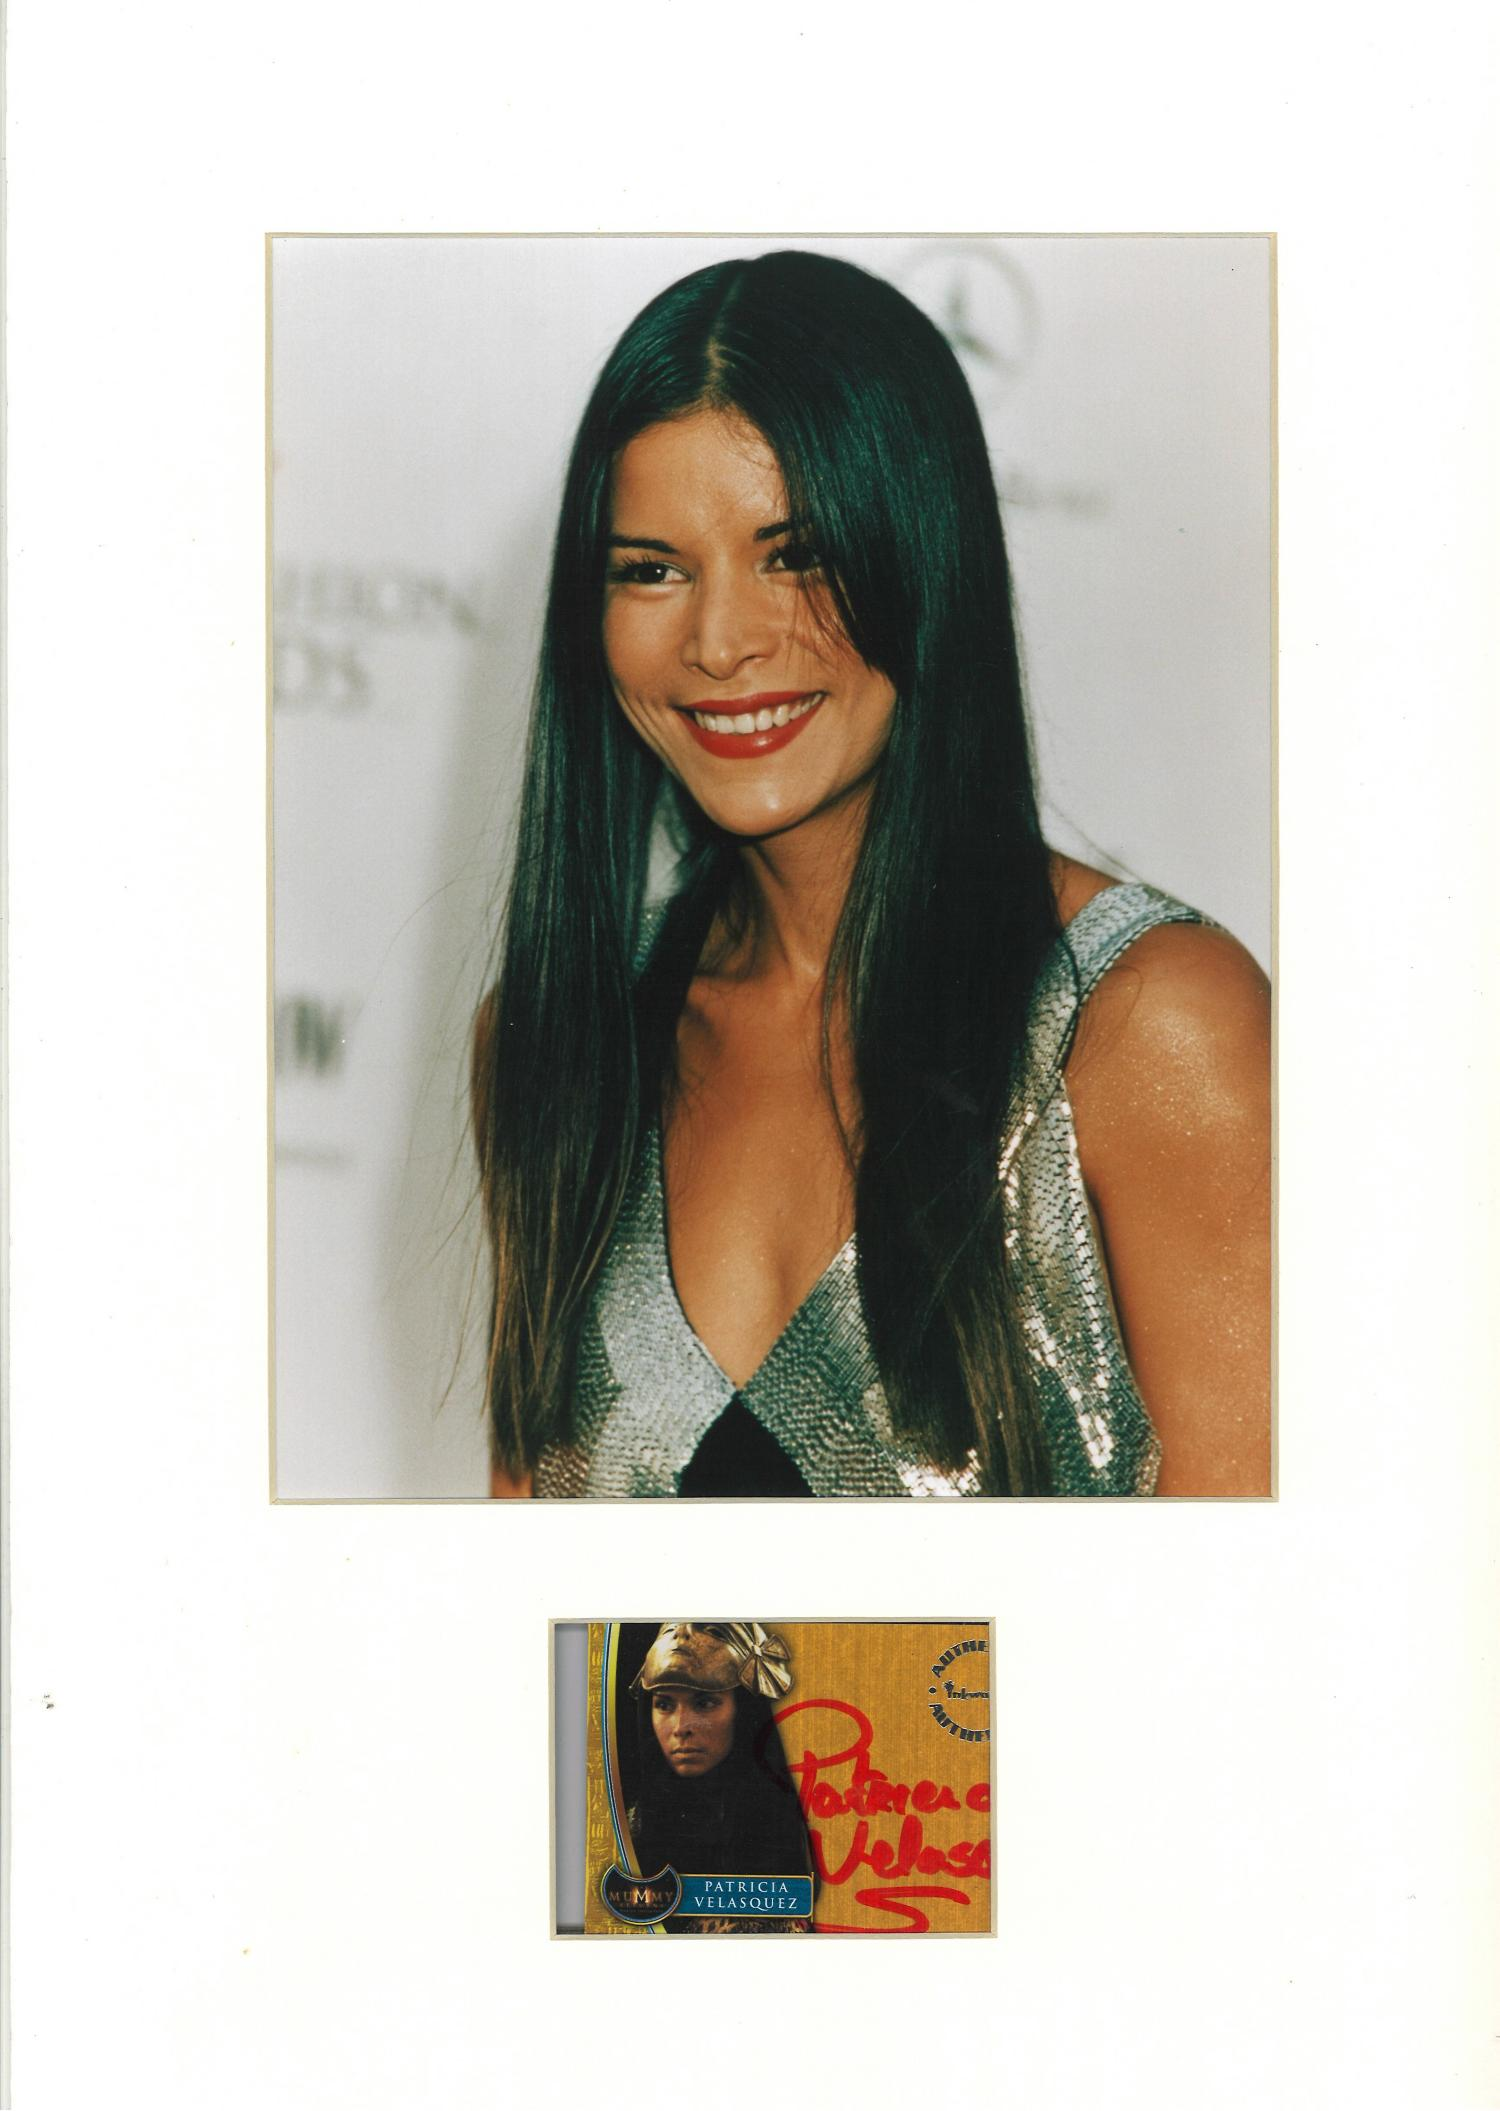 Lot 140 - Patricia Velasquez signature piece mounted below colour photo. Approx overall size 16x12. Good